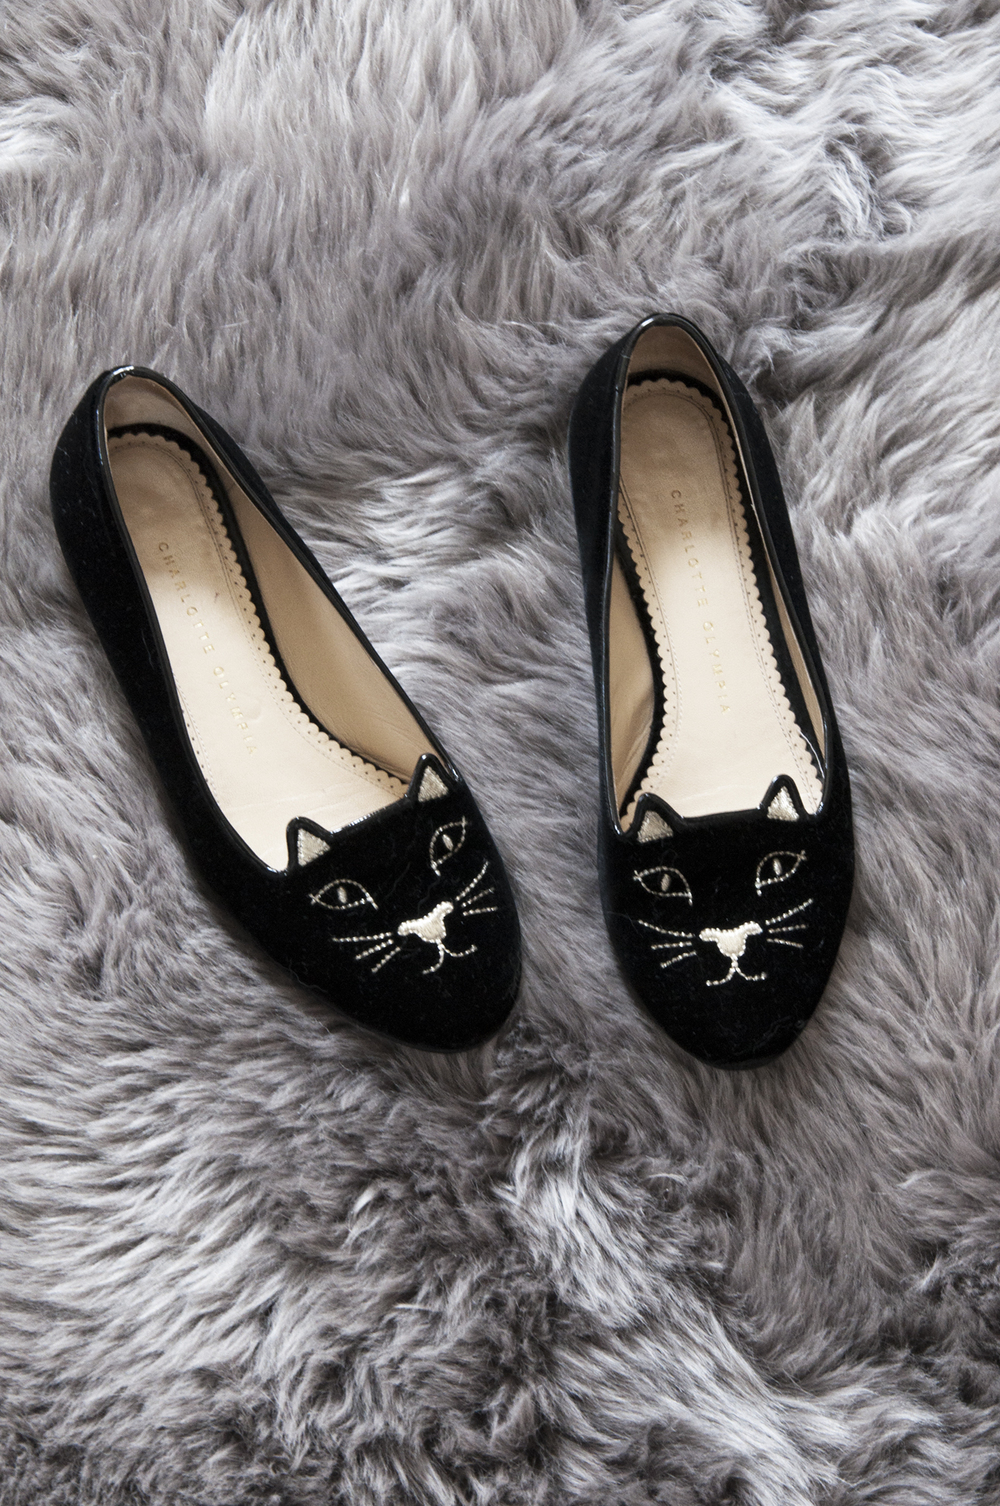 charlotte olympia shoes.jpg